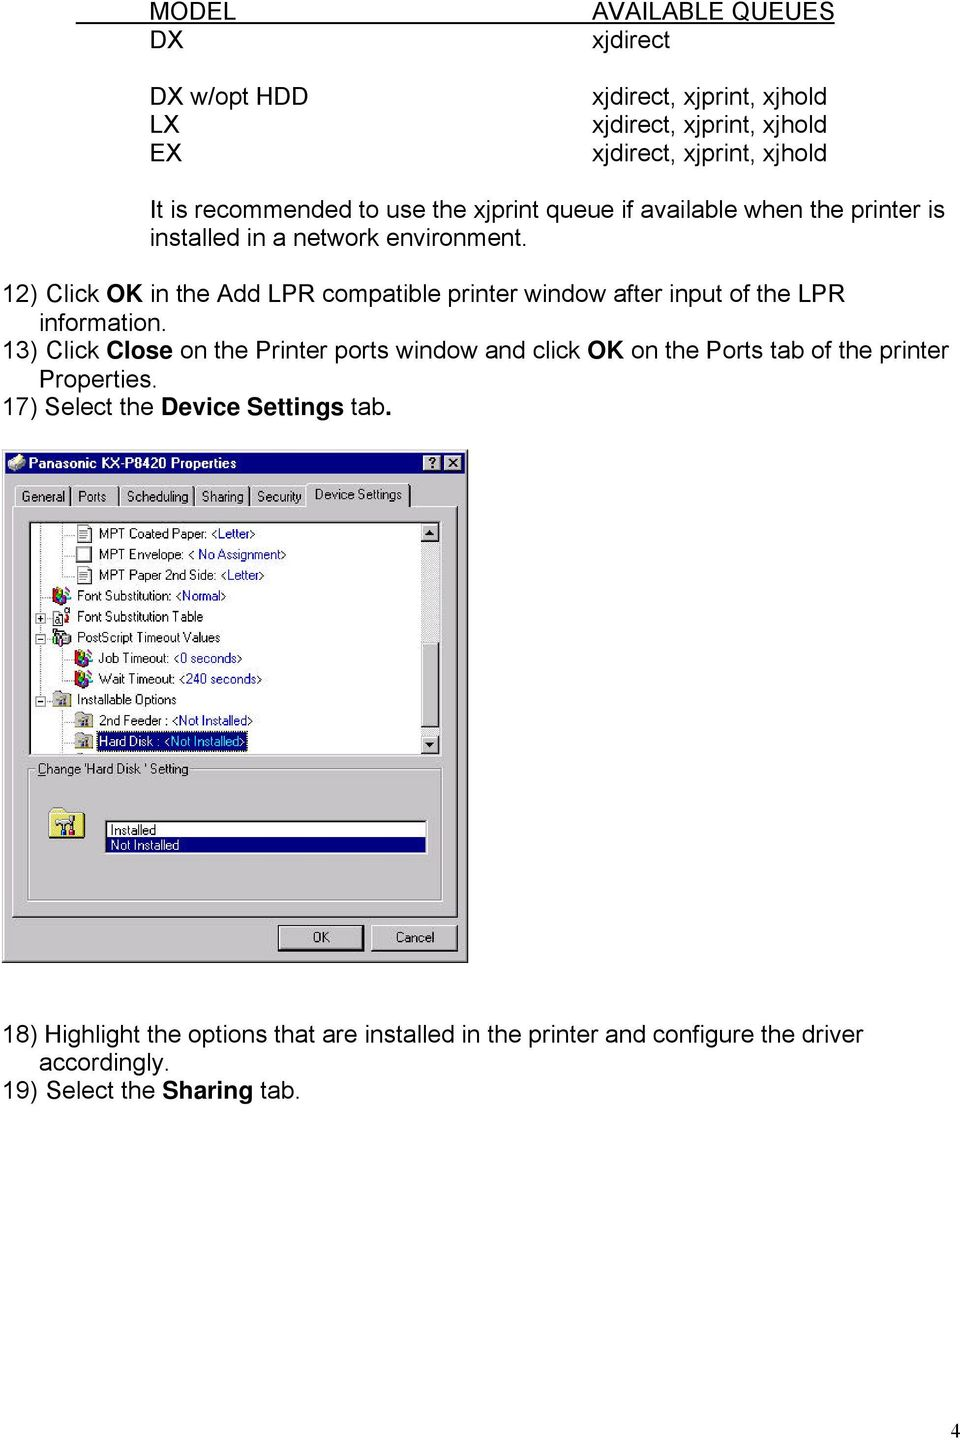 12) Click OK in the Add LPR compatible printer window after input of the LPR information.